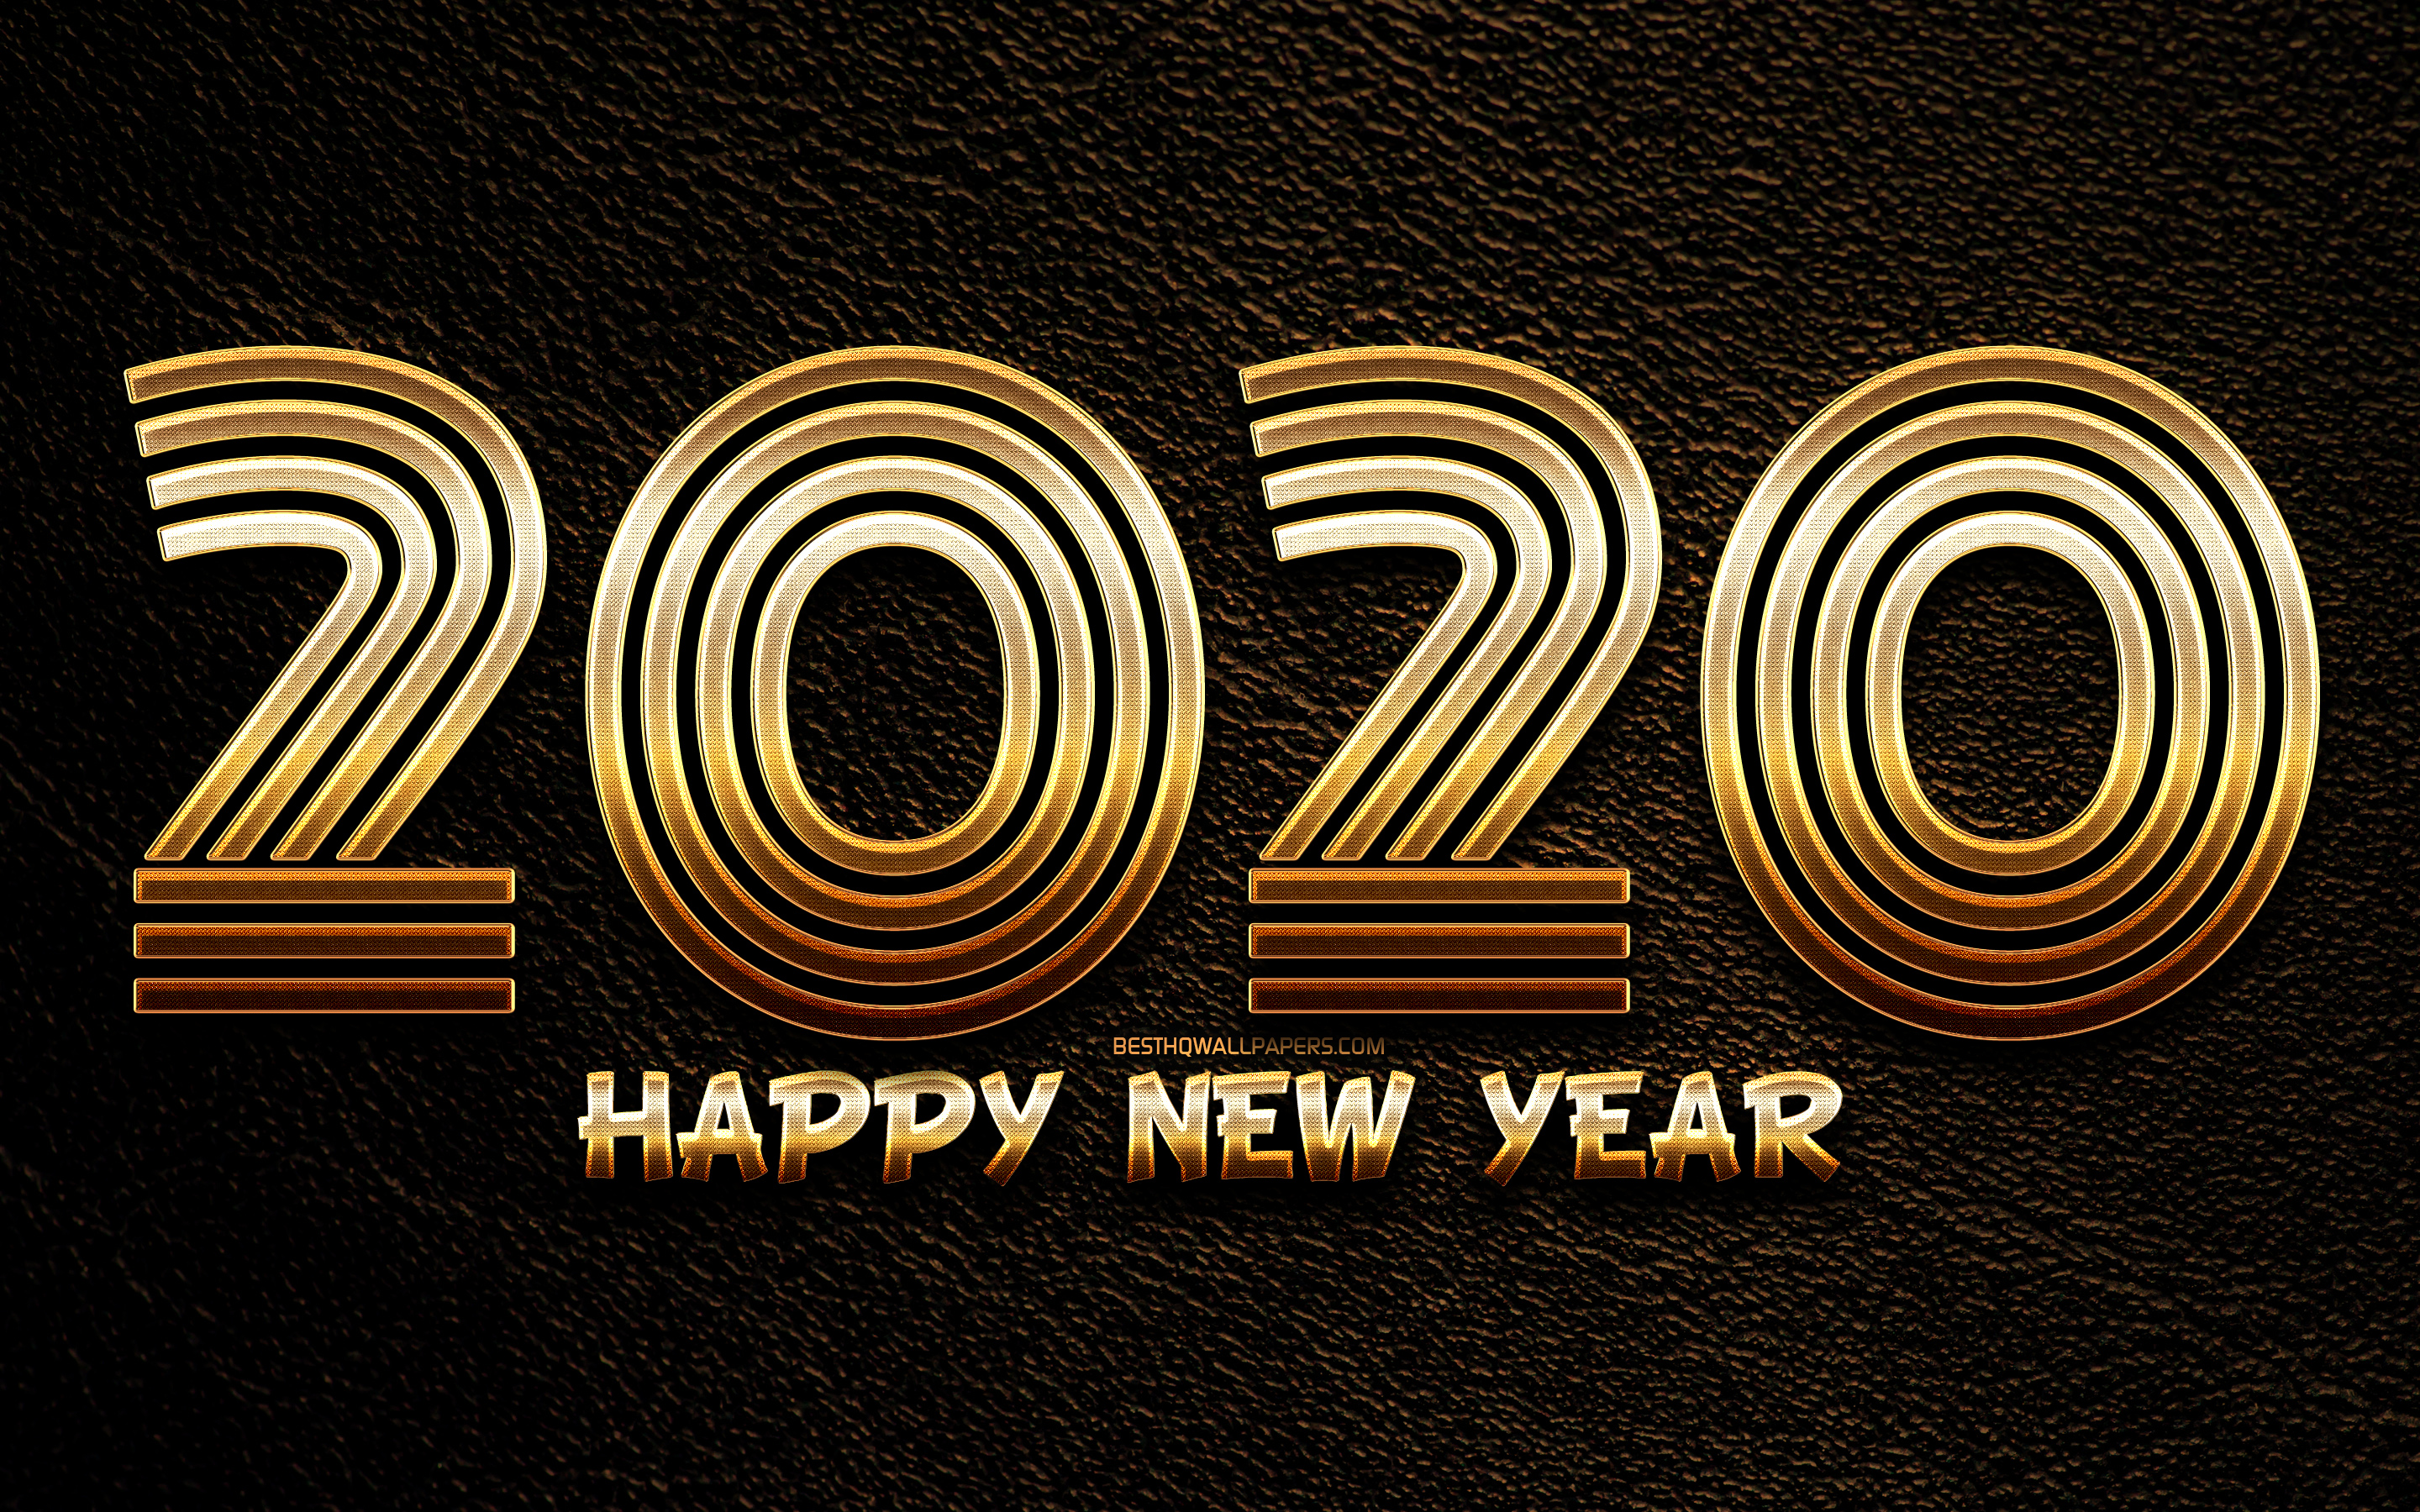 Happy New Year 2020, brown leather background, creative, 2020 golden linear digits, 2020 metal art, 2020 concepts, golden linear digits, 2020 on leather background, 2020 year digits